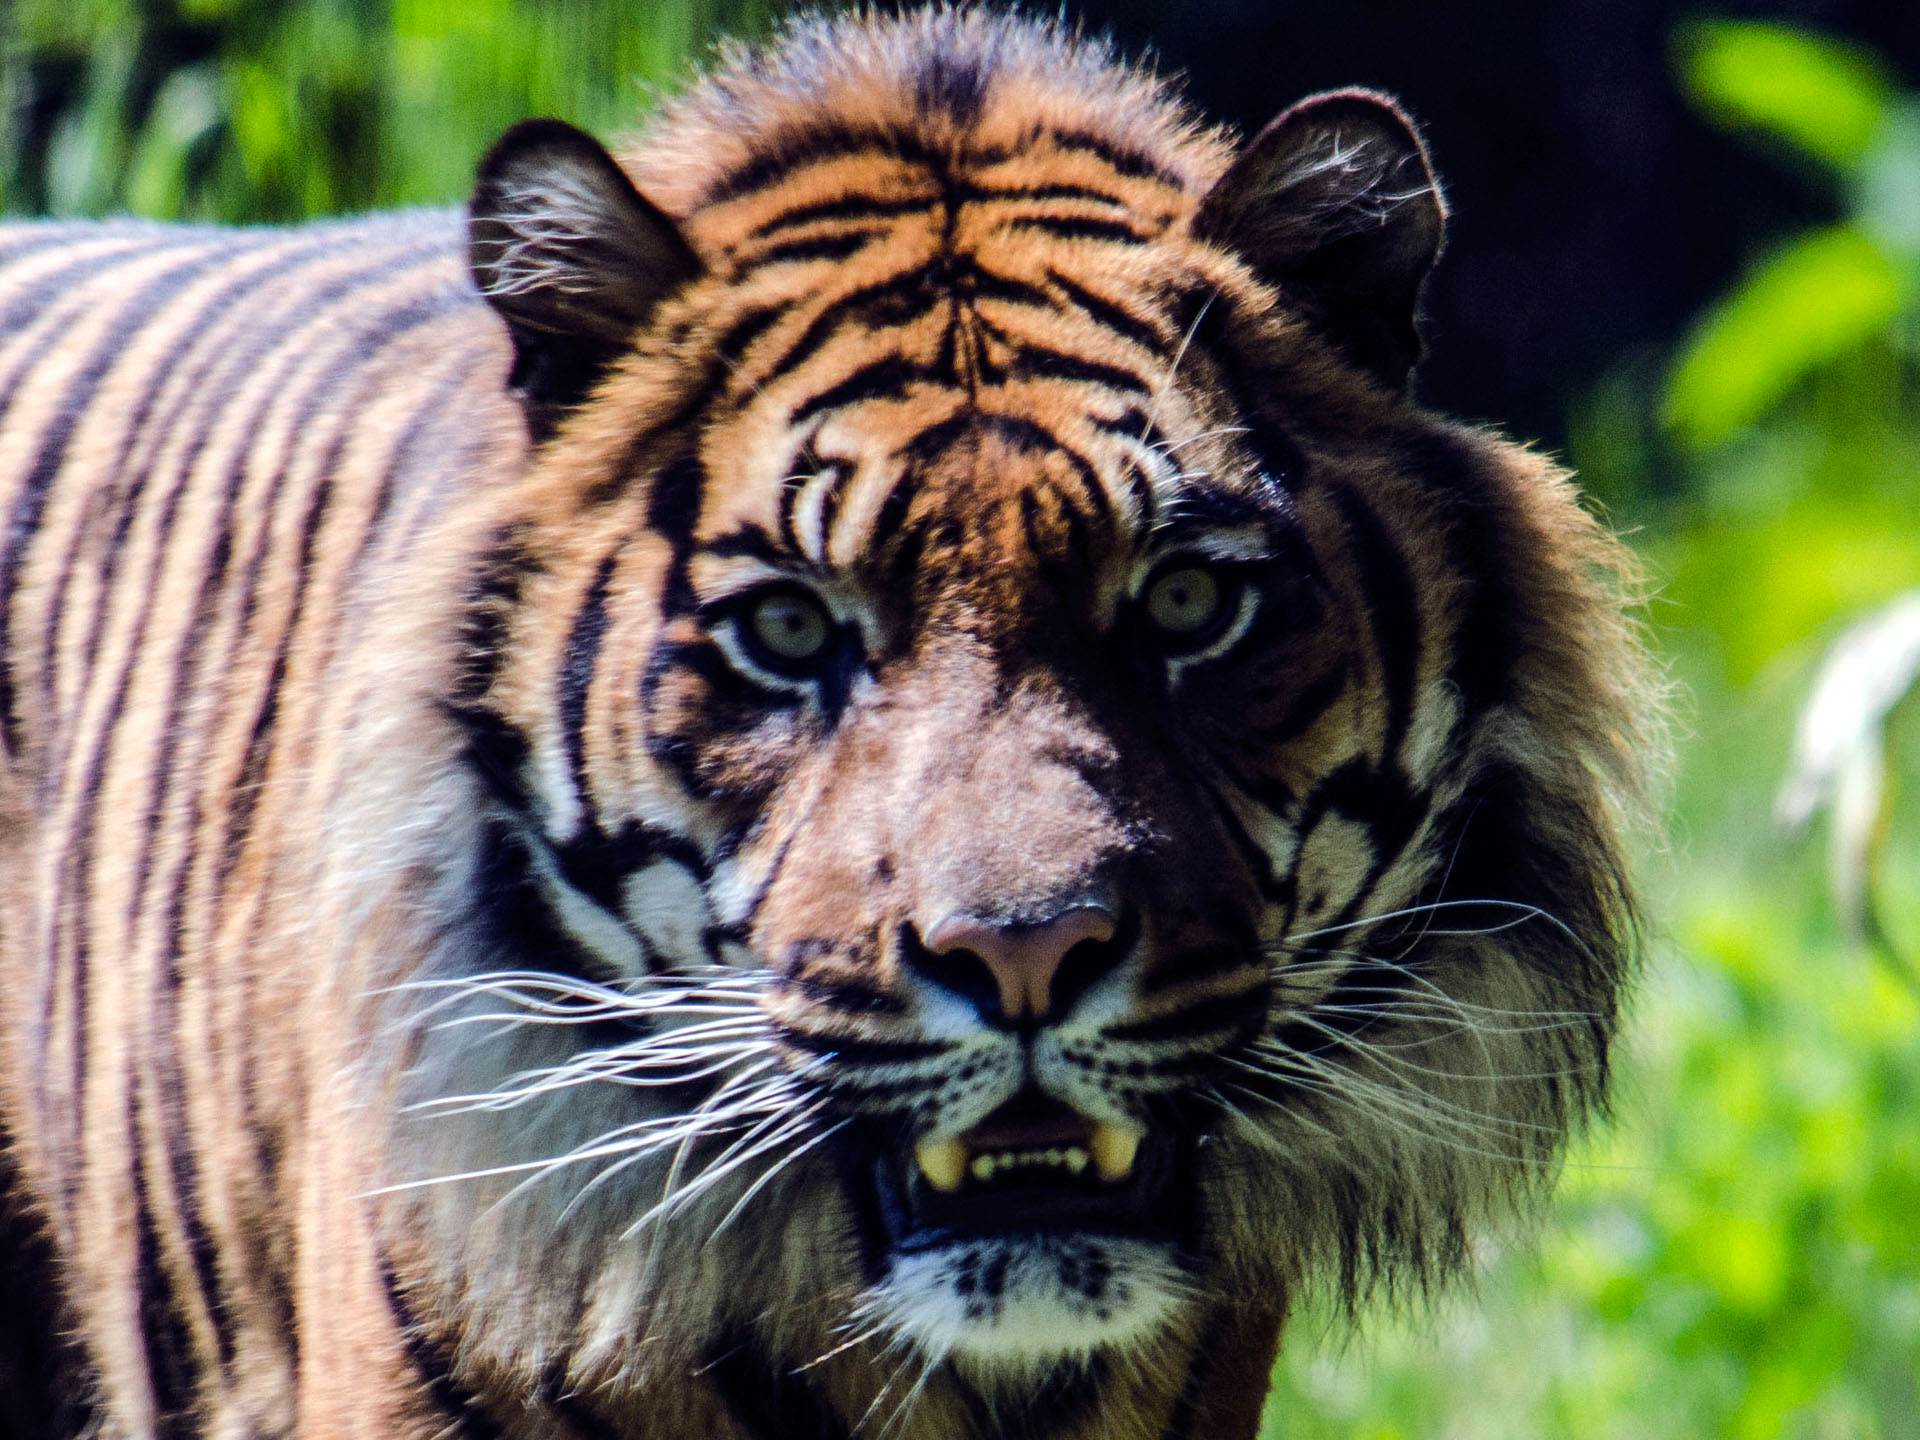 Angry Tiger Wallpapers - Angry Lion Tiger Hd , HD Wallpaper & Backgrounds